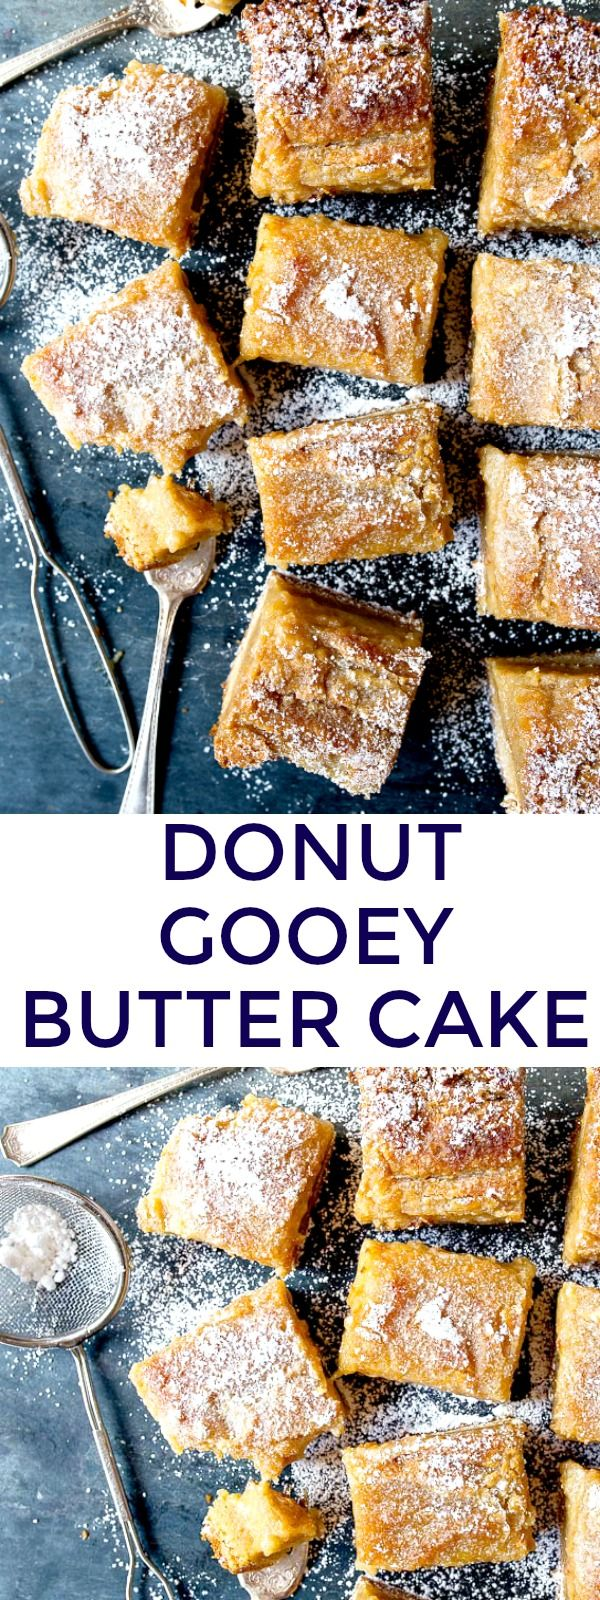 """Gooey butter cake from scratch without a cake mix! Made in a small 8x8"""" pan. Tastes like the best glazed donuts. Seriously!"""